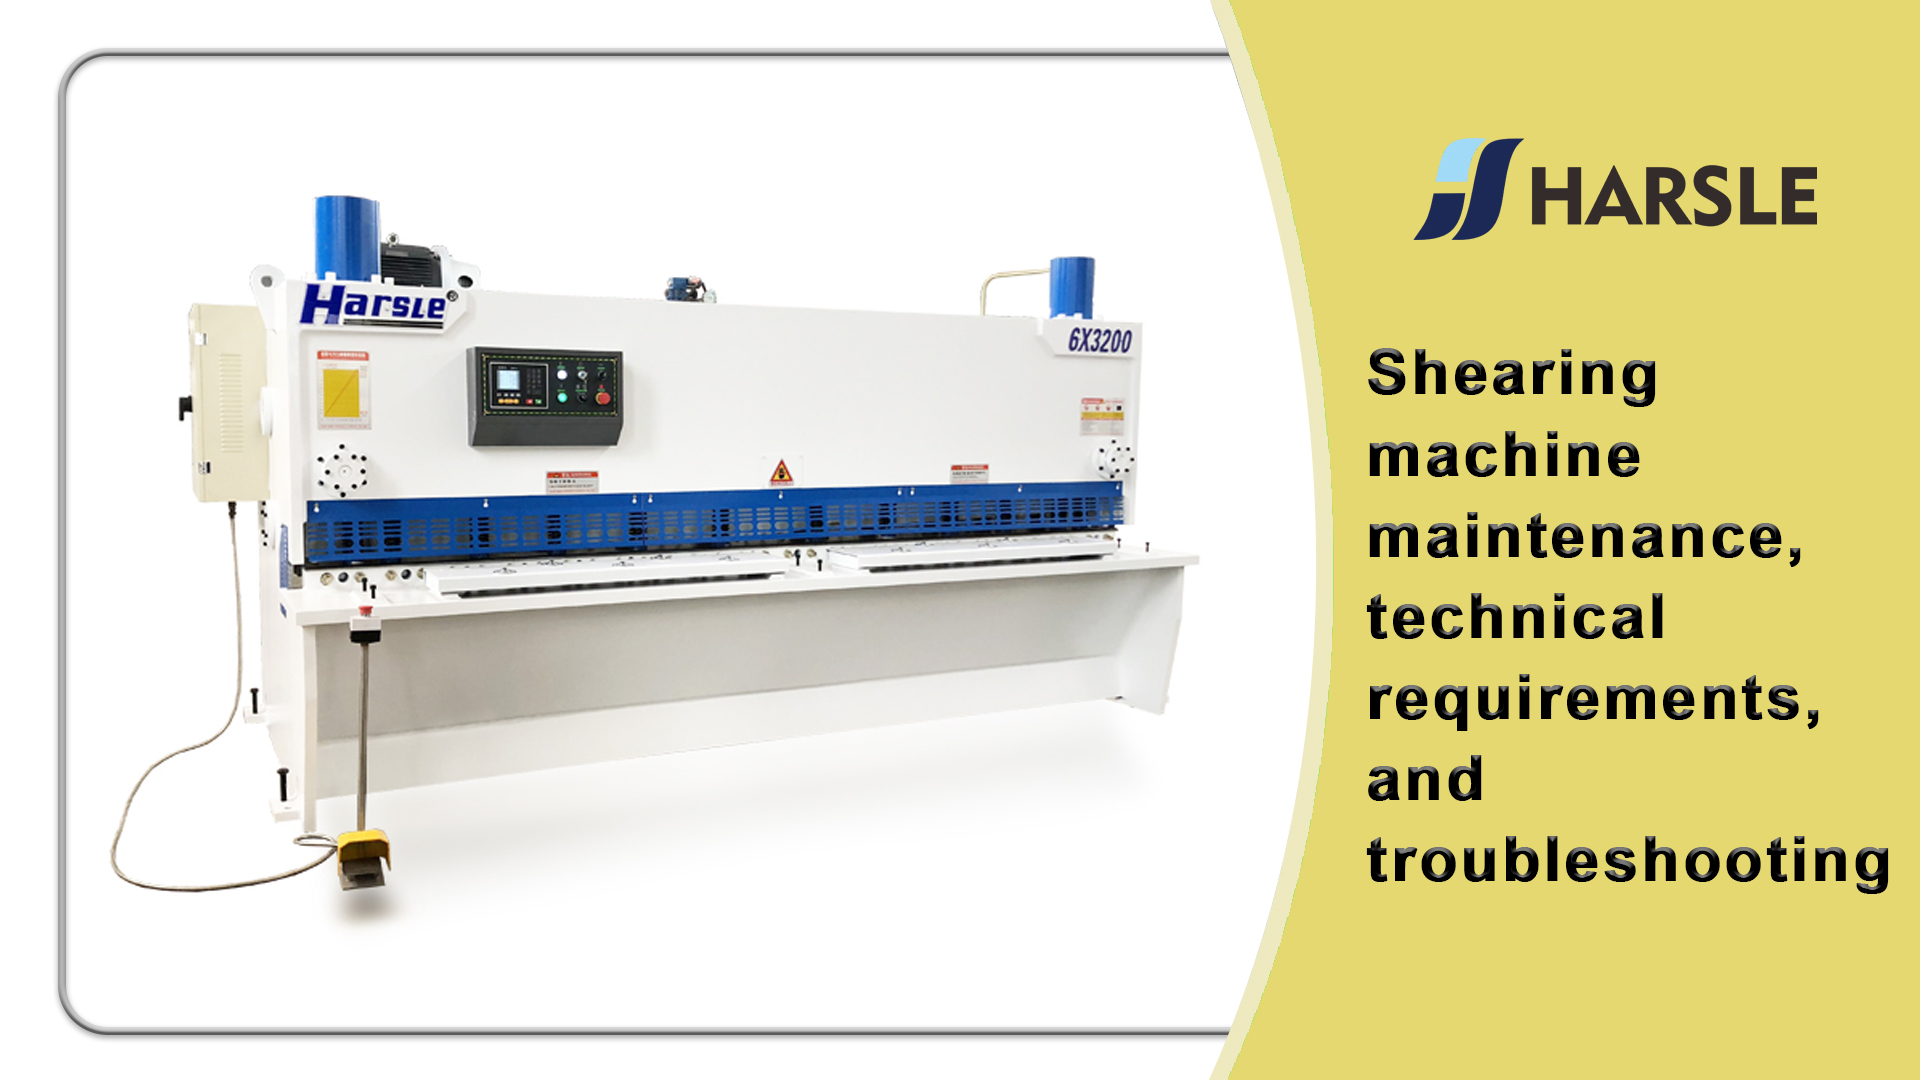 Shearing machine maintenance, technical requirements, and troubleshooting